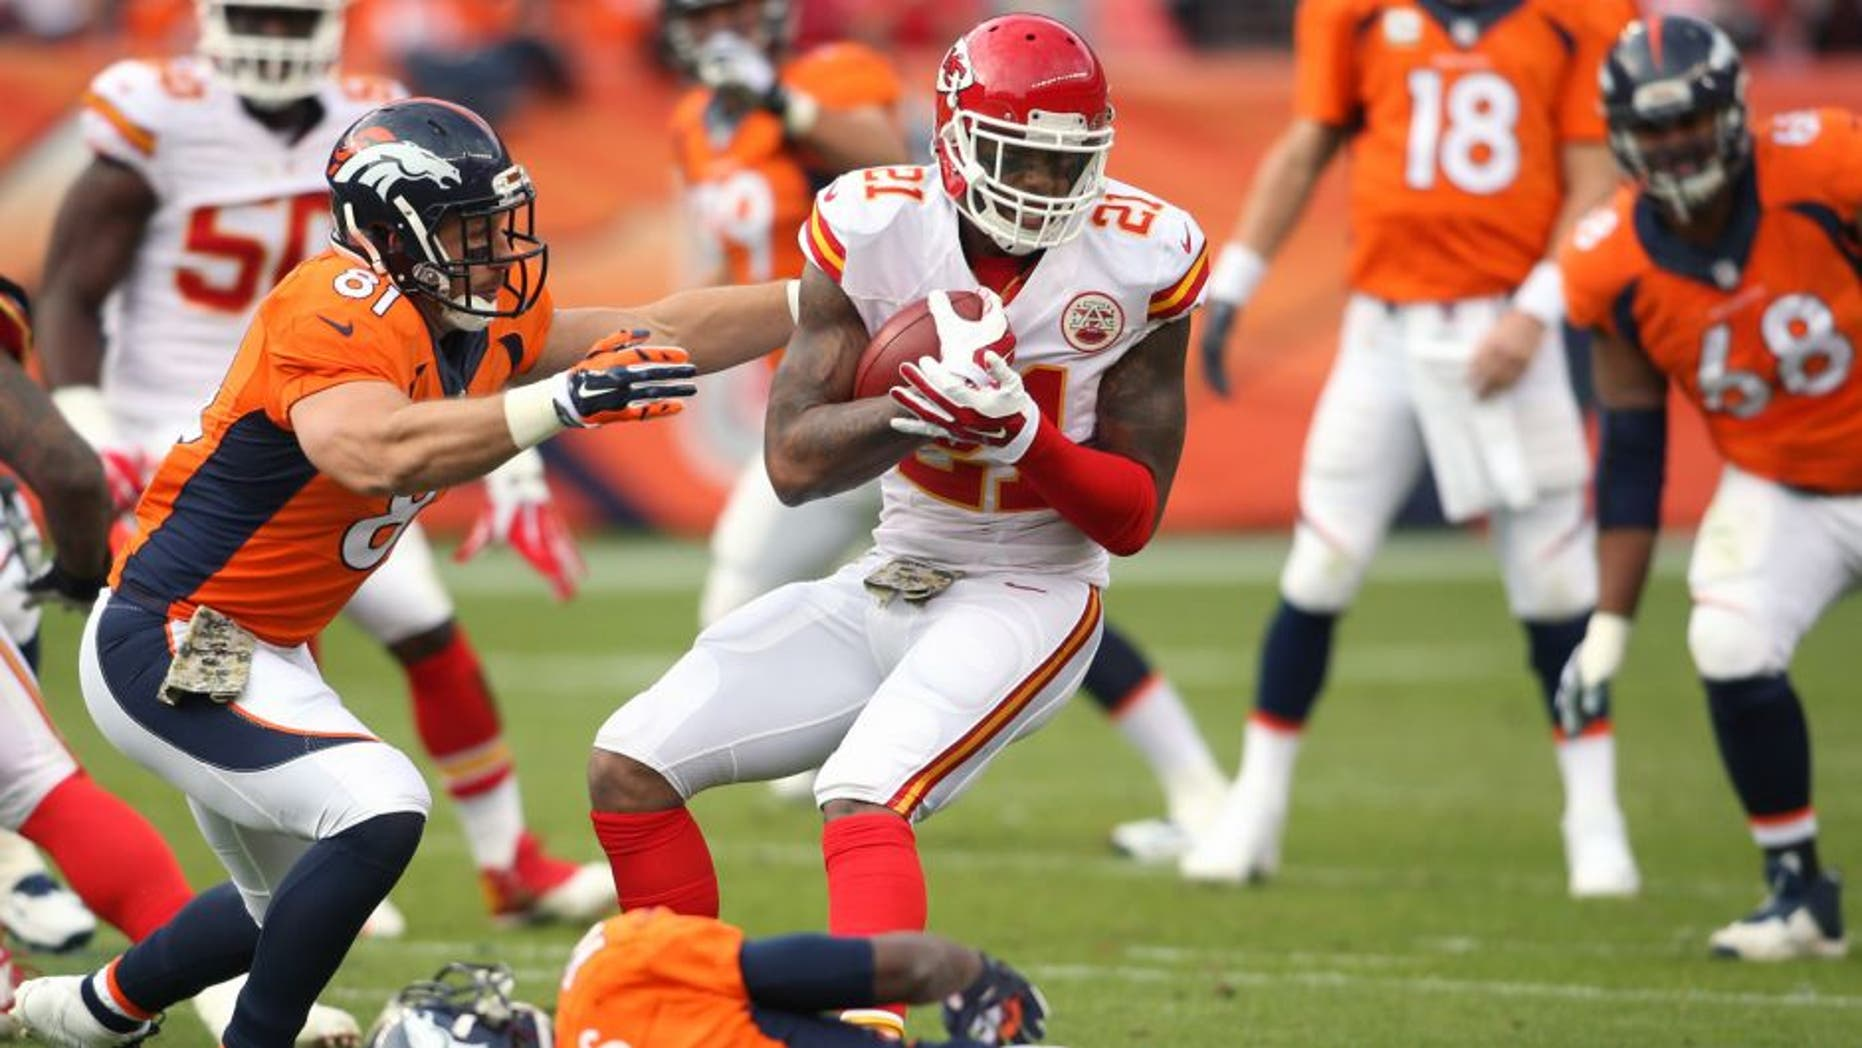 Nov 15, 2015; Denver, CO, USA; Kansas City Chiefs cornerback Sean Smith (21) attempts to avoid being tackled by Denver Broncos tight end Owen Daniels (81) and wide receiver Emmanuel Sanders (10) after intercepting a pass throw by Denver Broncos quarterback Peyton Manning (18) during the first half at Sports Authority Field at Mile High. Mandatory Credit: Chris Humphreys-USA TODAY Sports